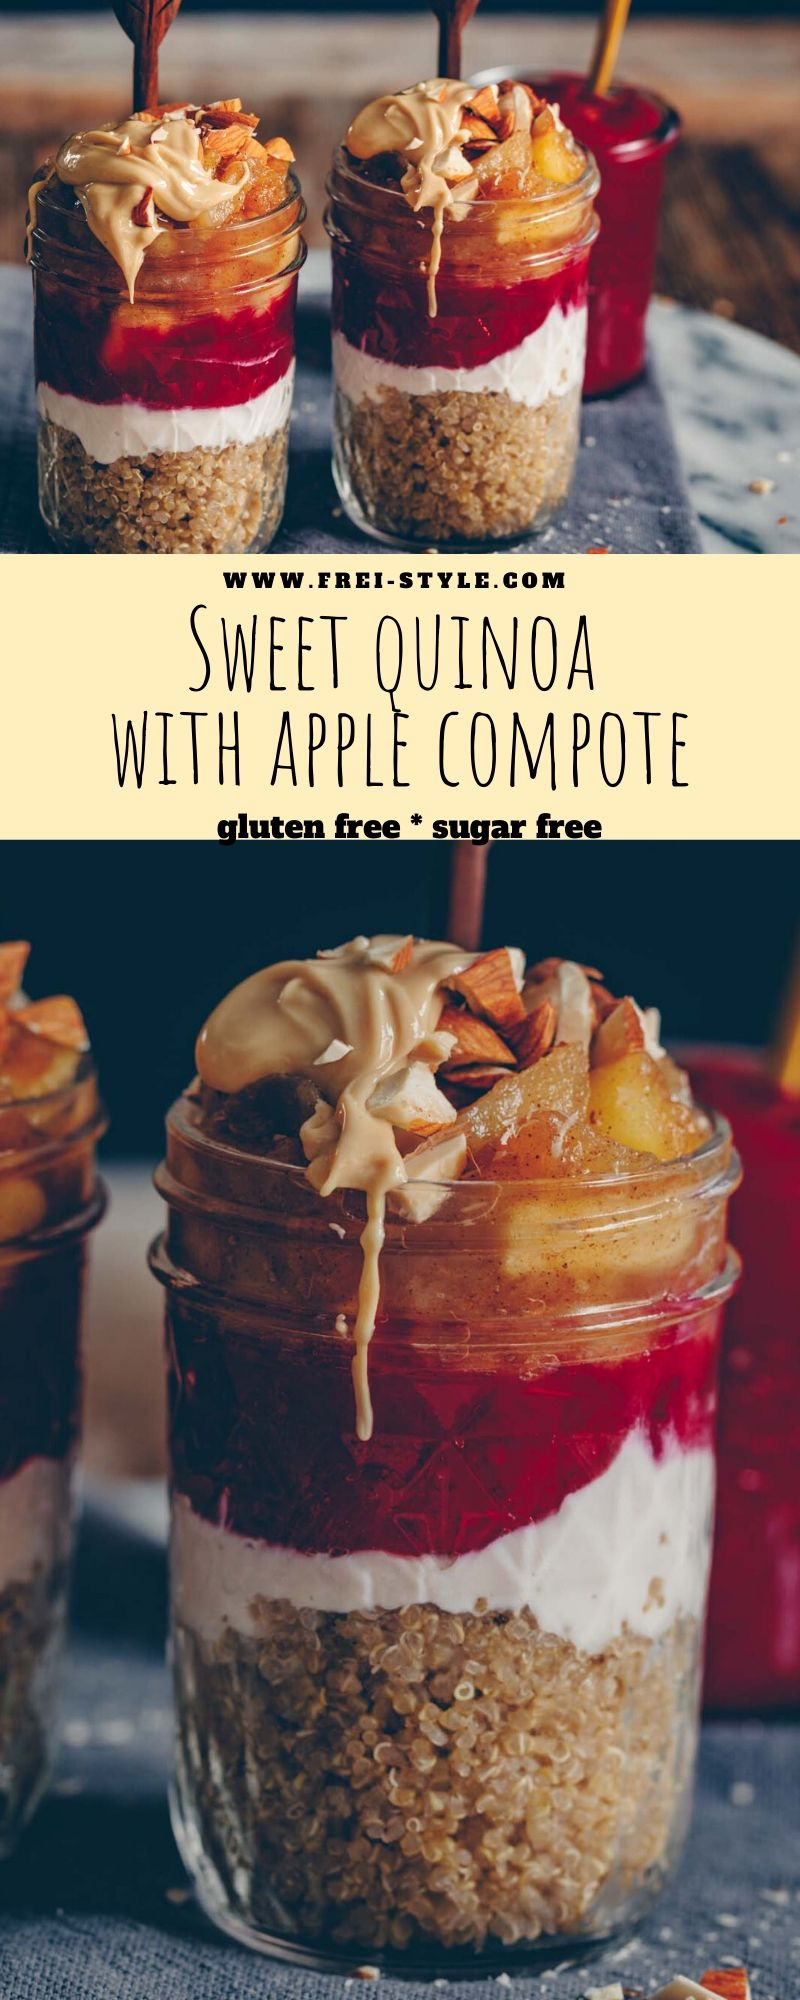 Sweet quinoa with apple compote